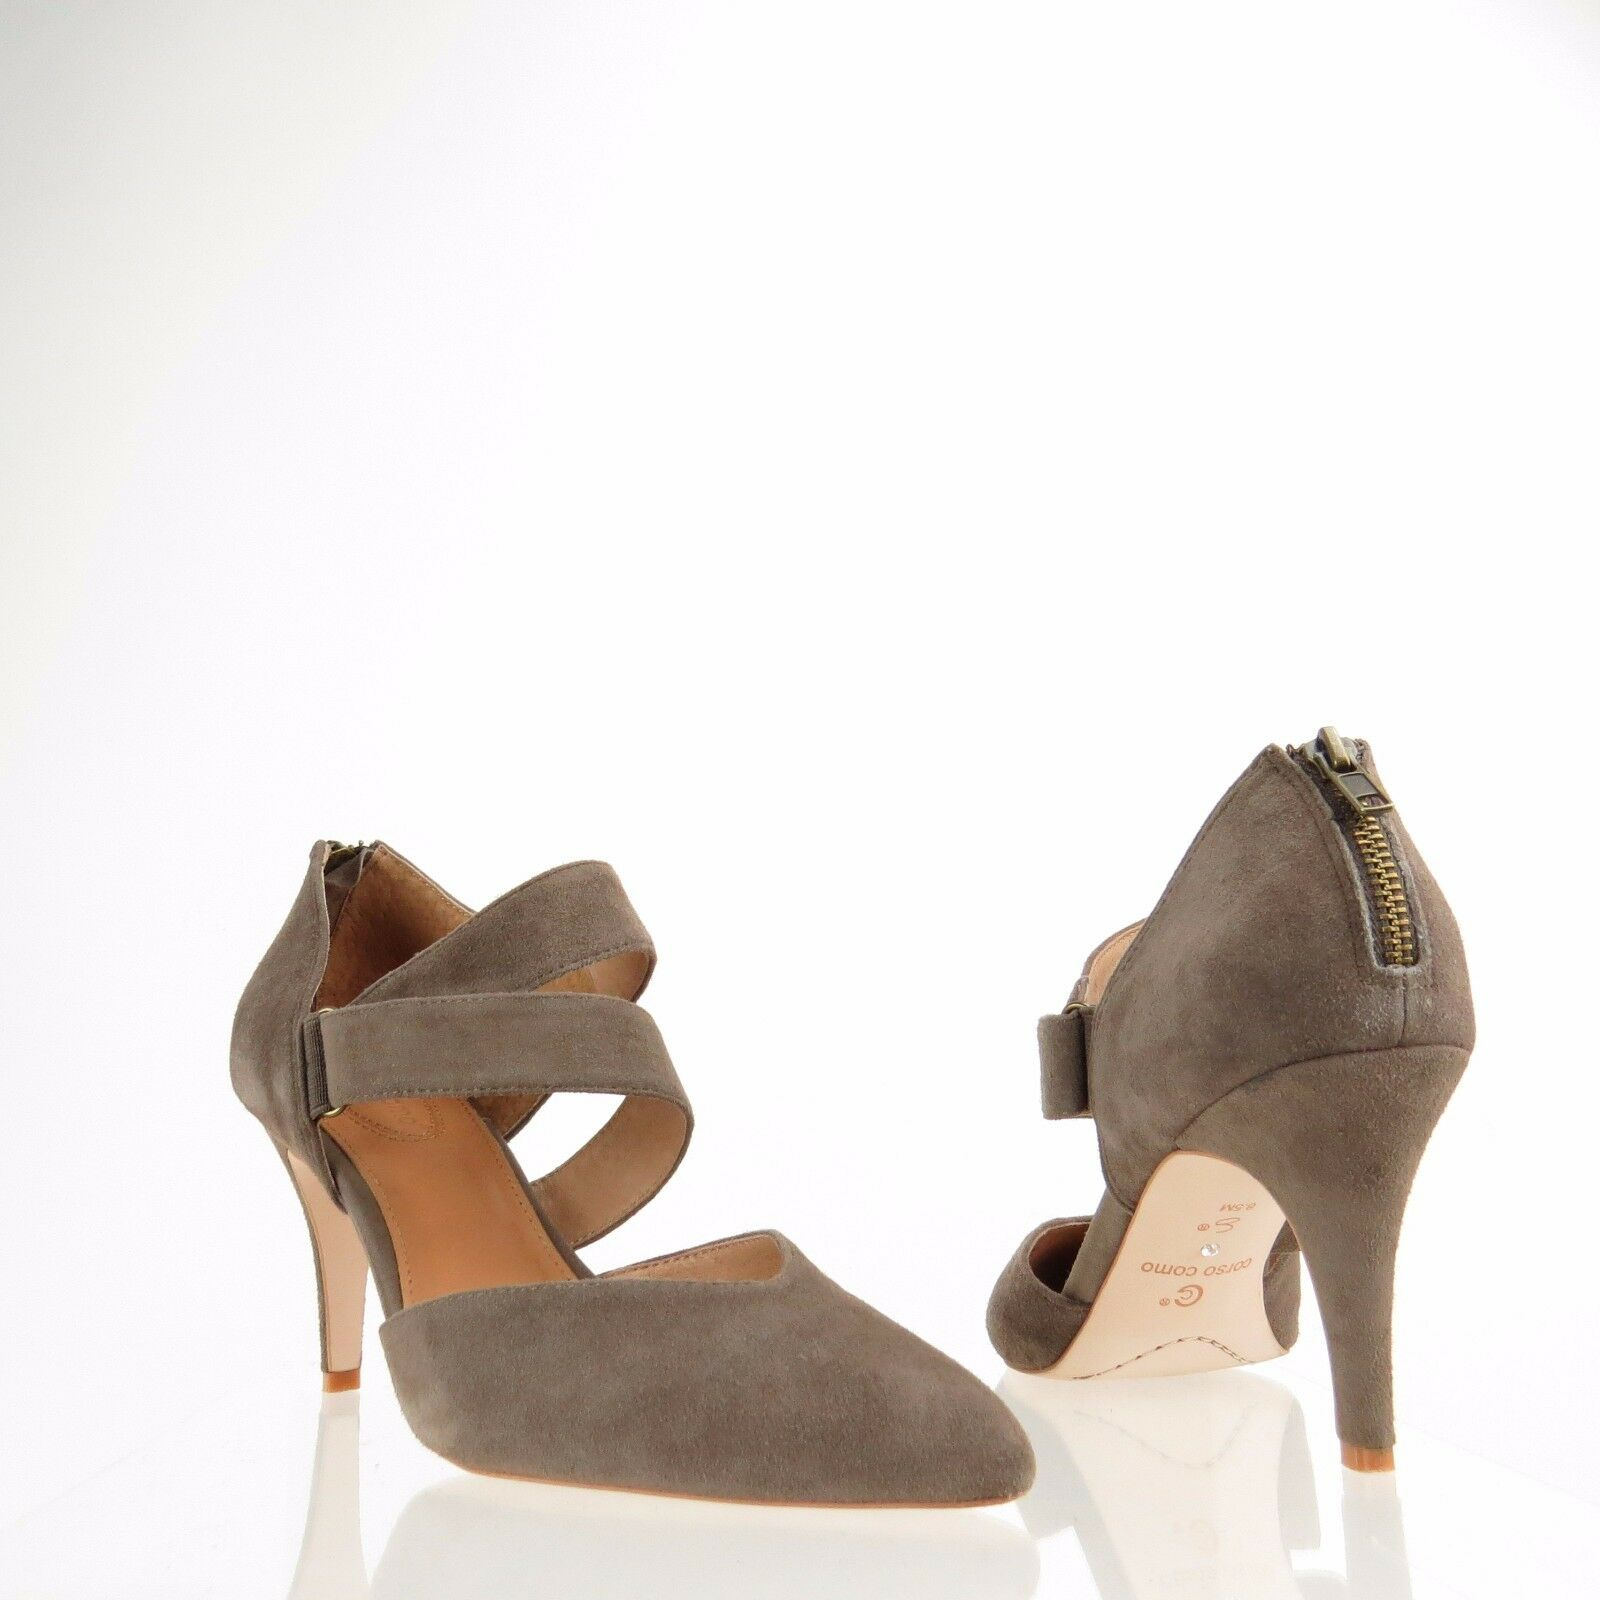 Women's Corso Como Carroll shoes Taupe Suede Strappy Heels Size 8.5 M